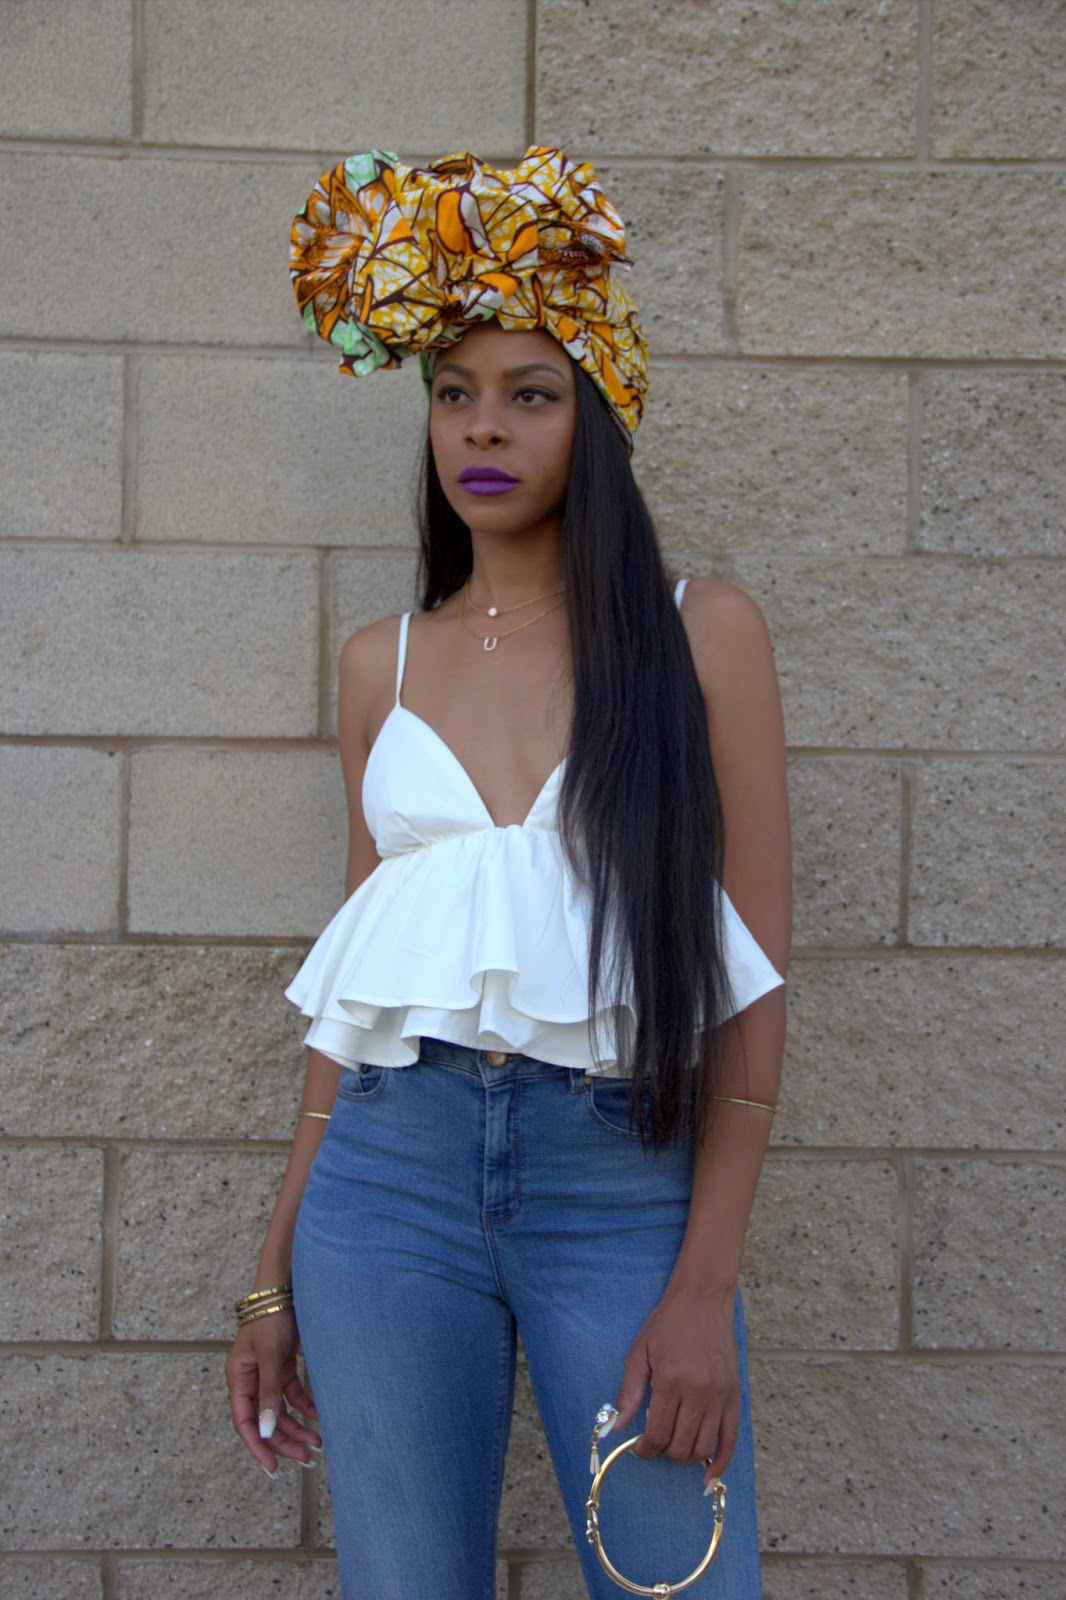 shayla greene, allthingsslim, black fashion blogger